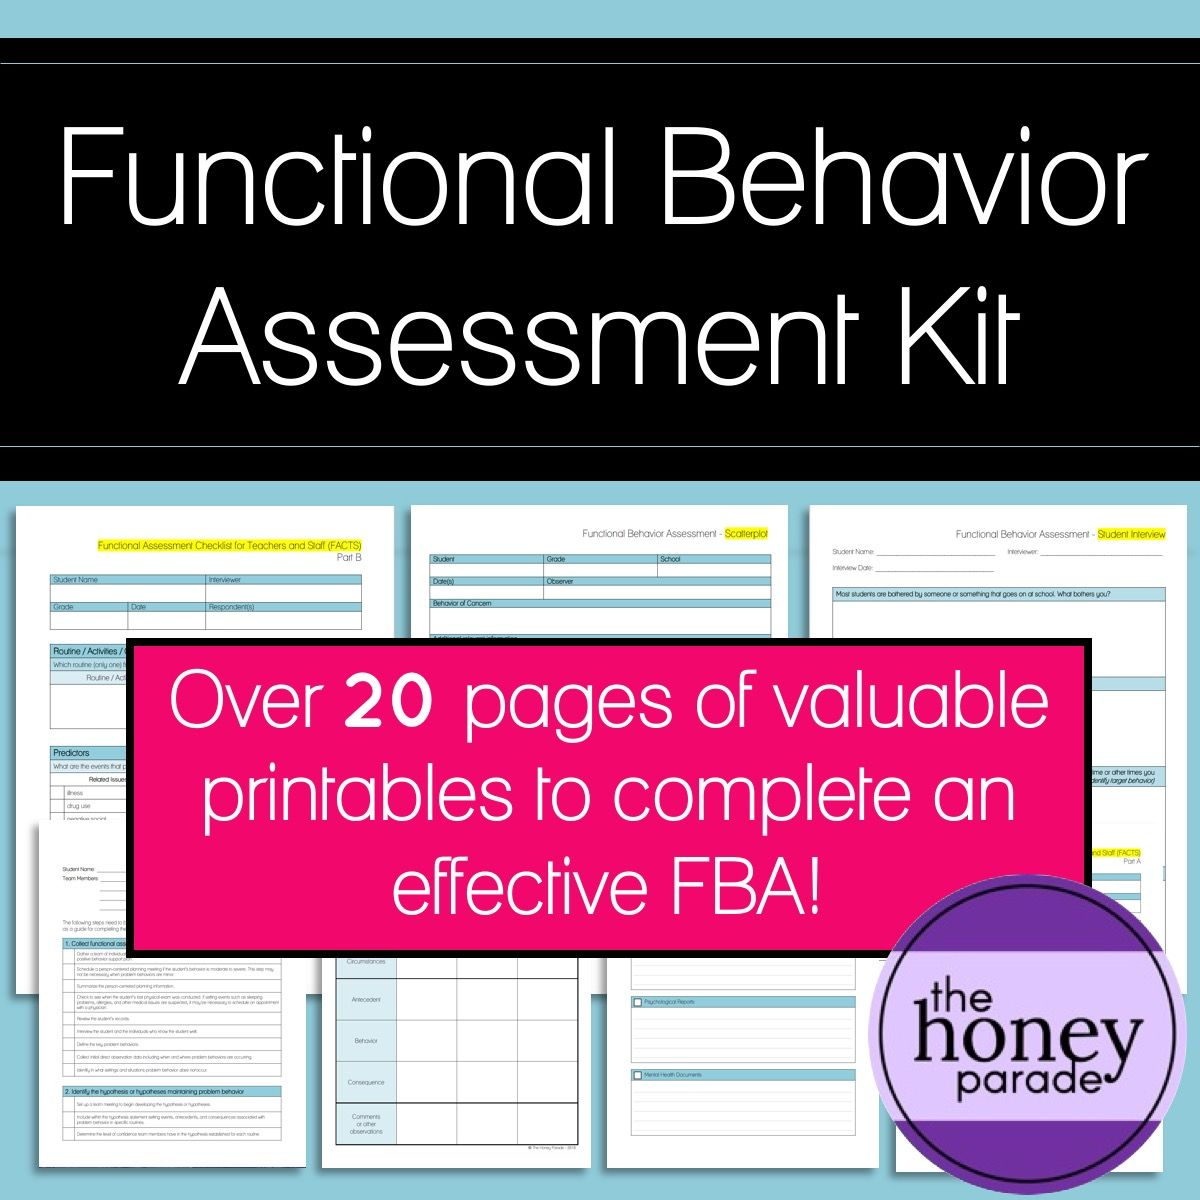 Functional Behavior Assessment Kit